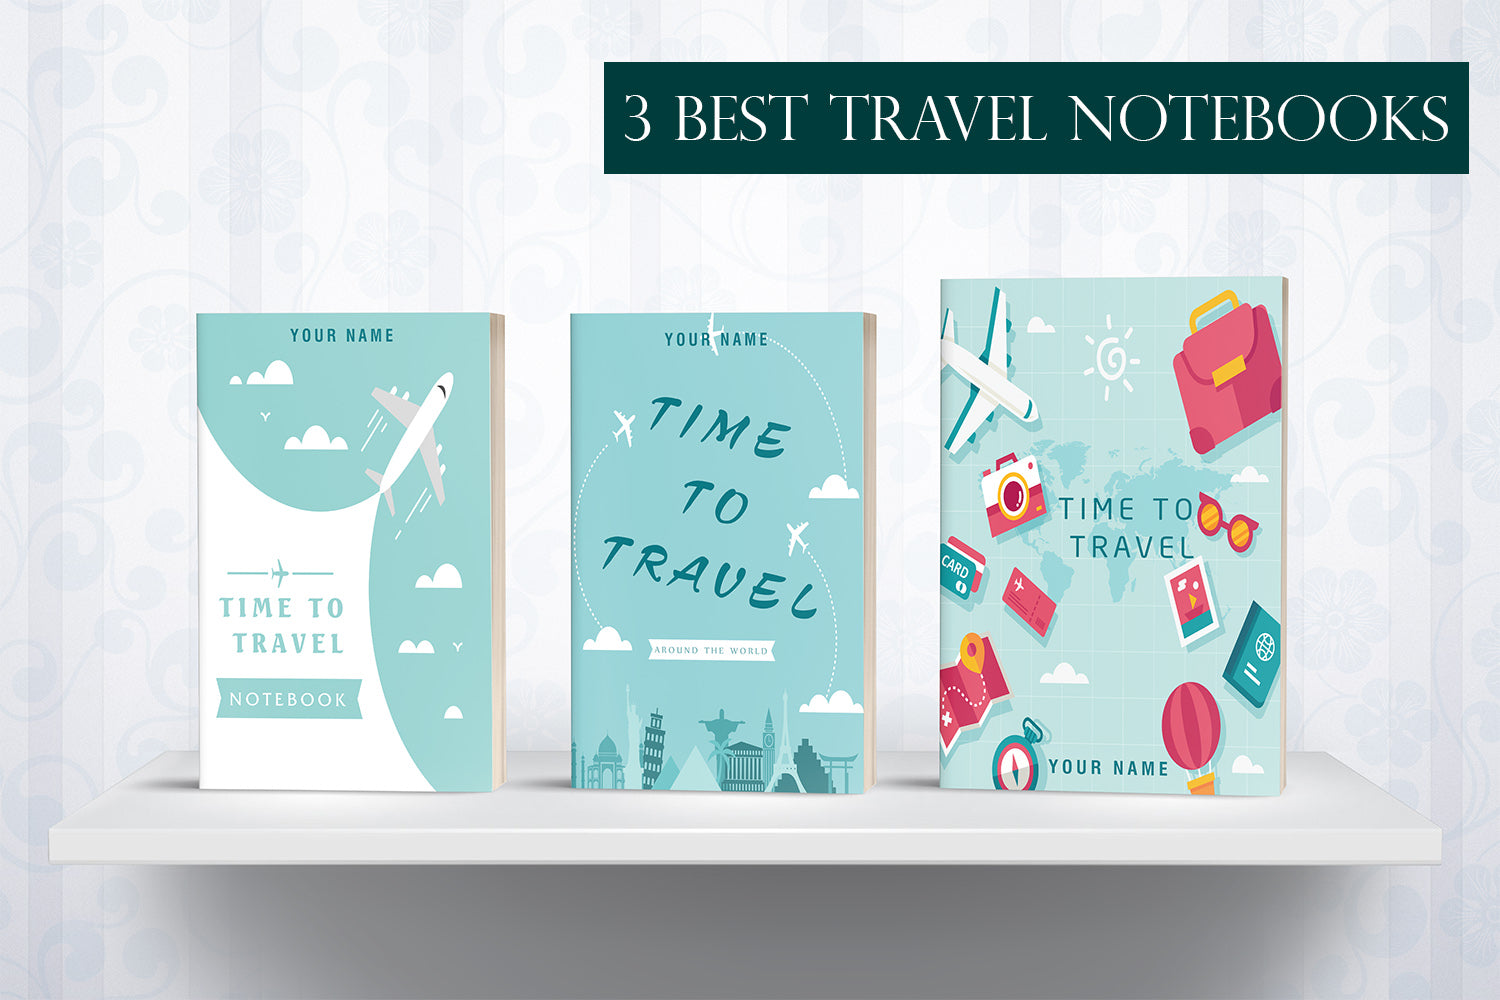 3 Best Travel Notebooks, Time To Travel, This Is The Perfect Notebook To Use, Printable